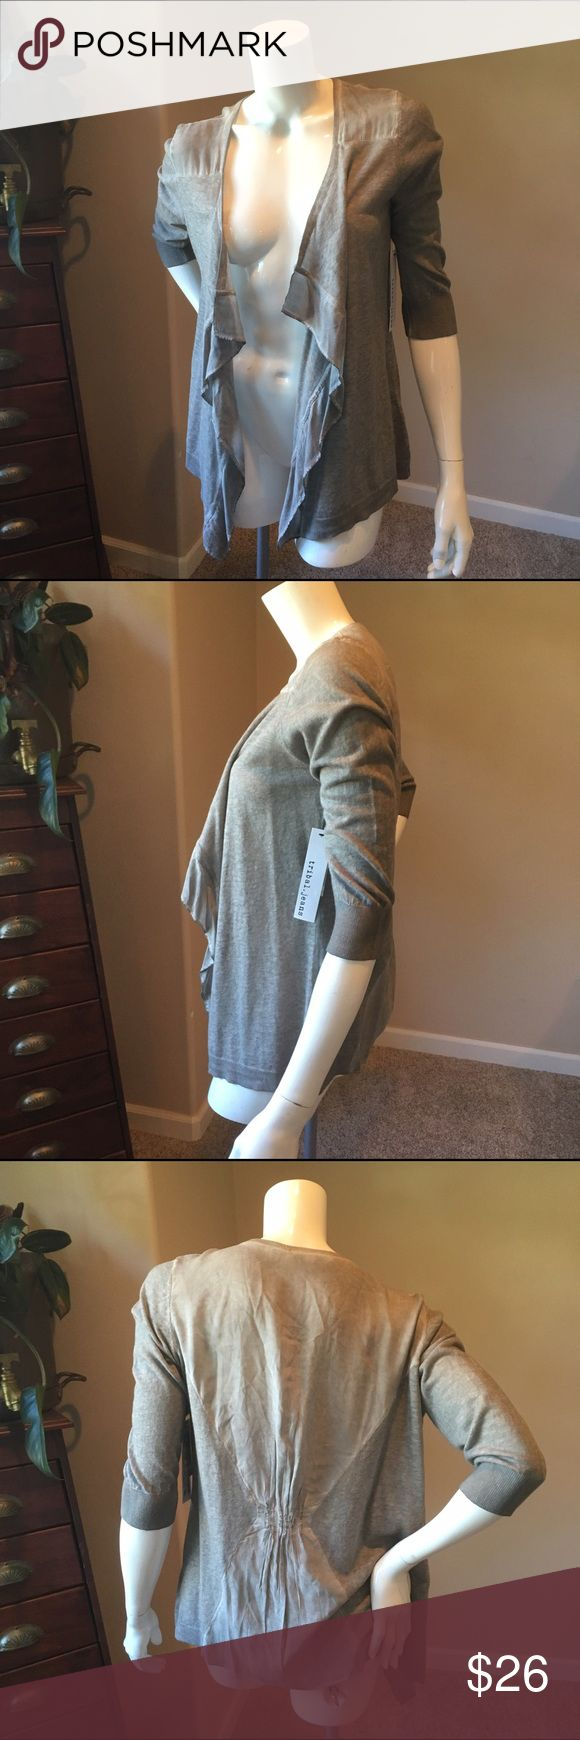 Tribal S NWT grey linen cardigan Tribal S NWT grey linen cardigan . This top is comfortable and has a slight tie dye wash to it. Perfect lightweight piece for layering. Measurements will be posted soon Tribal Sweaters Cardigans